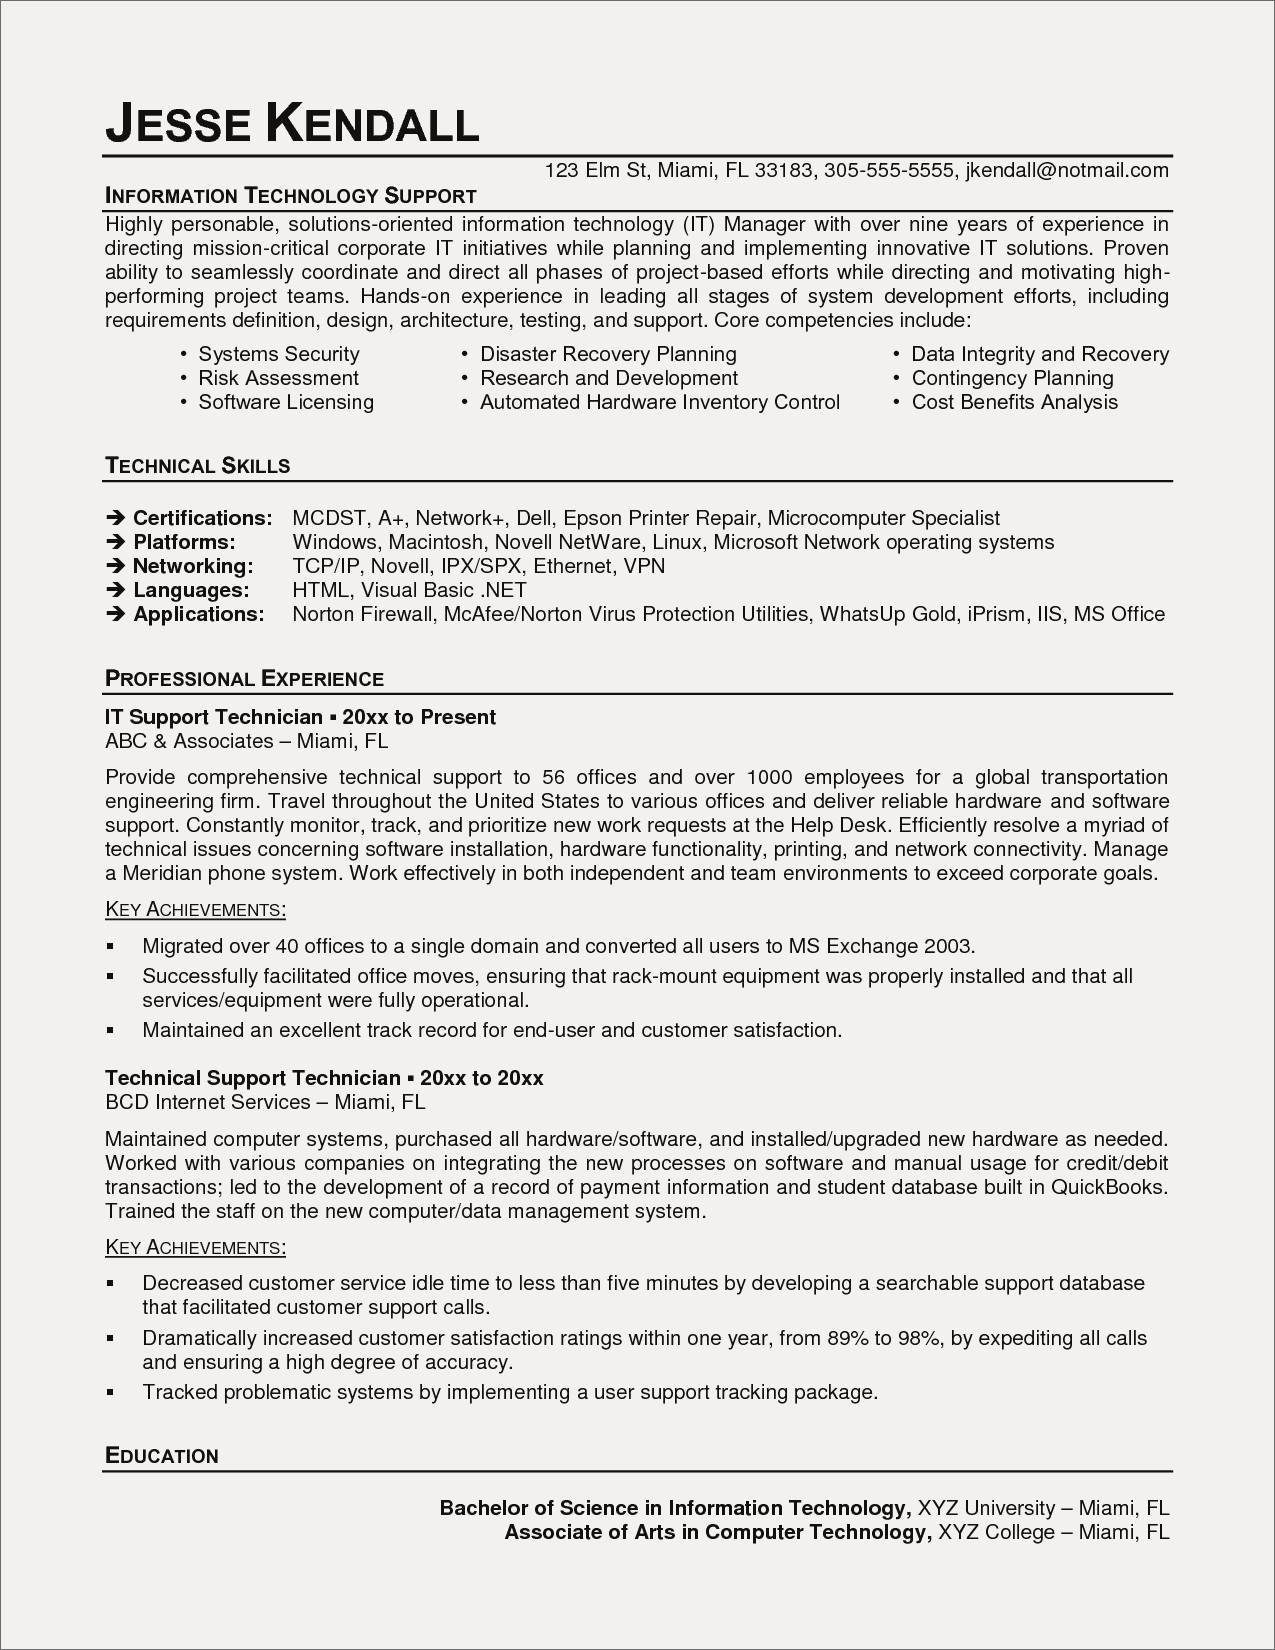 mechanic resume objective Collection-Technician Resume Examples New Auto Mechanic Resume American Resume Sample New Student Resume 0d 3-l